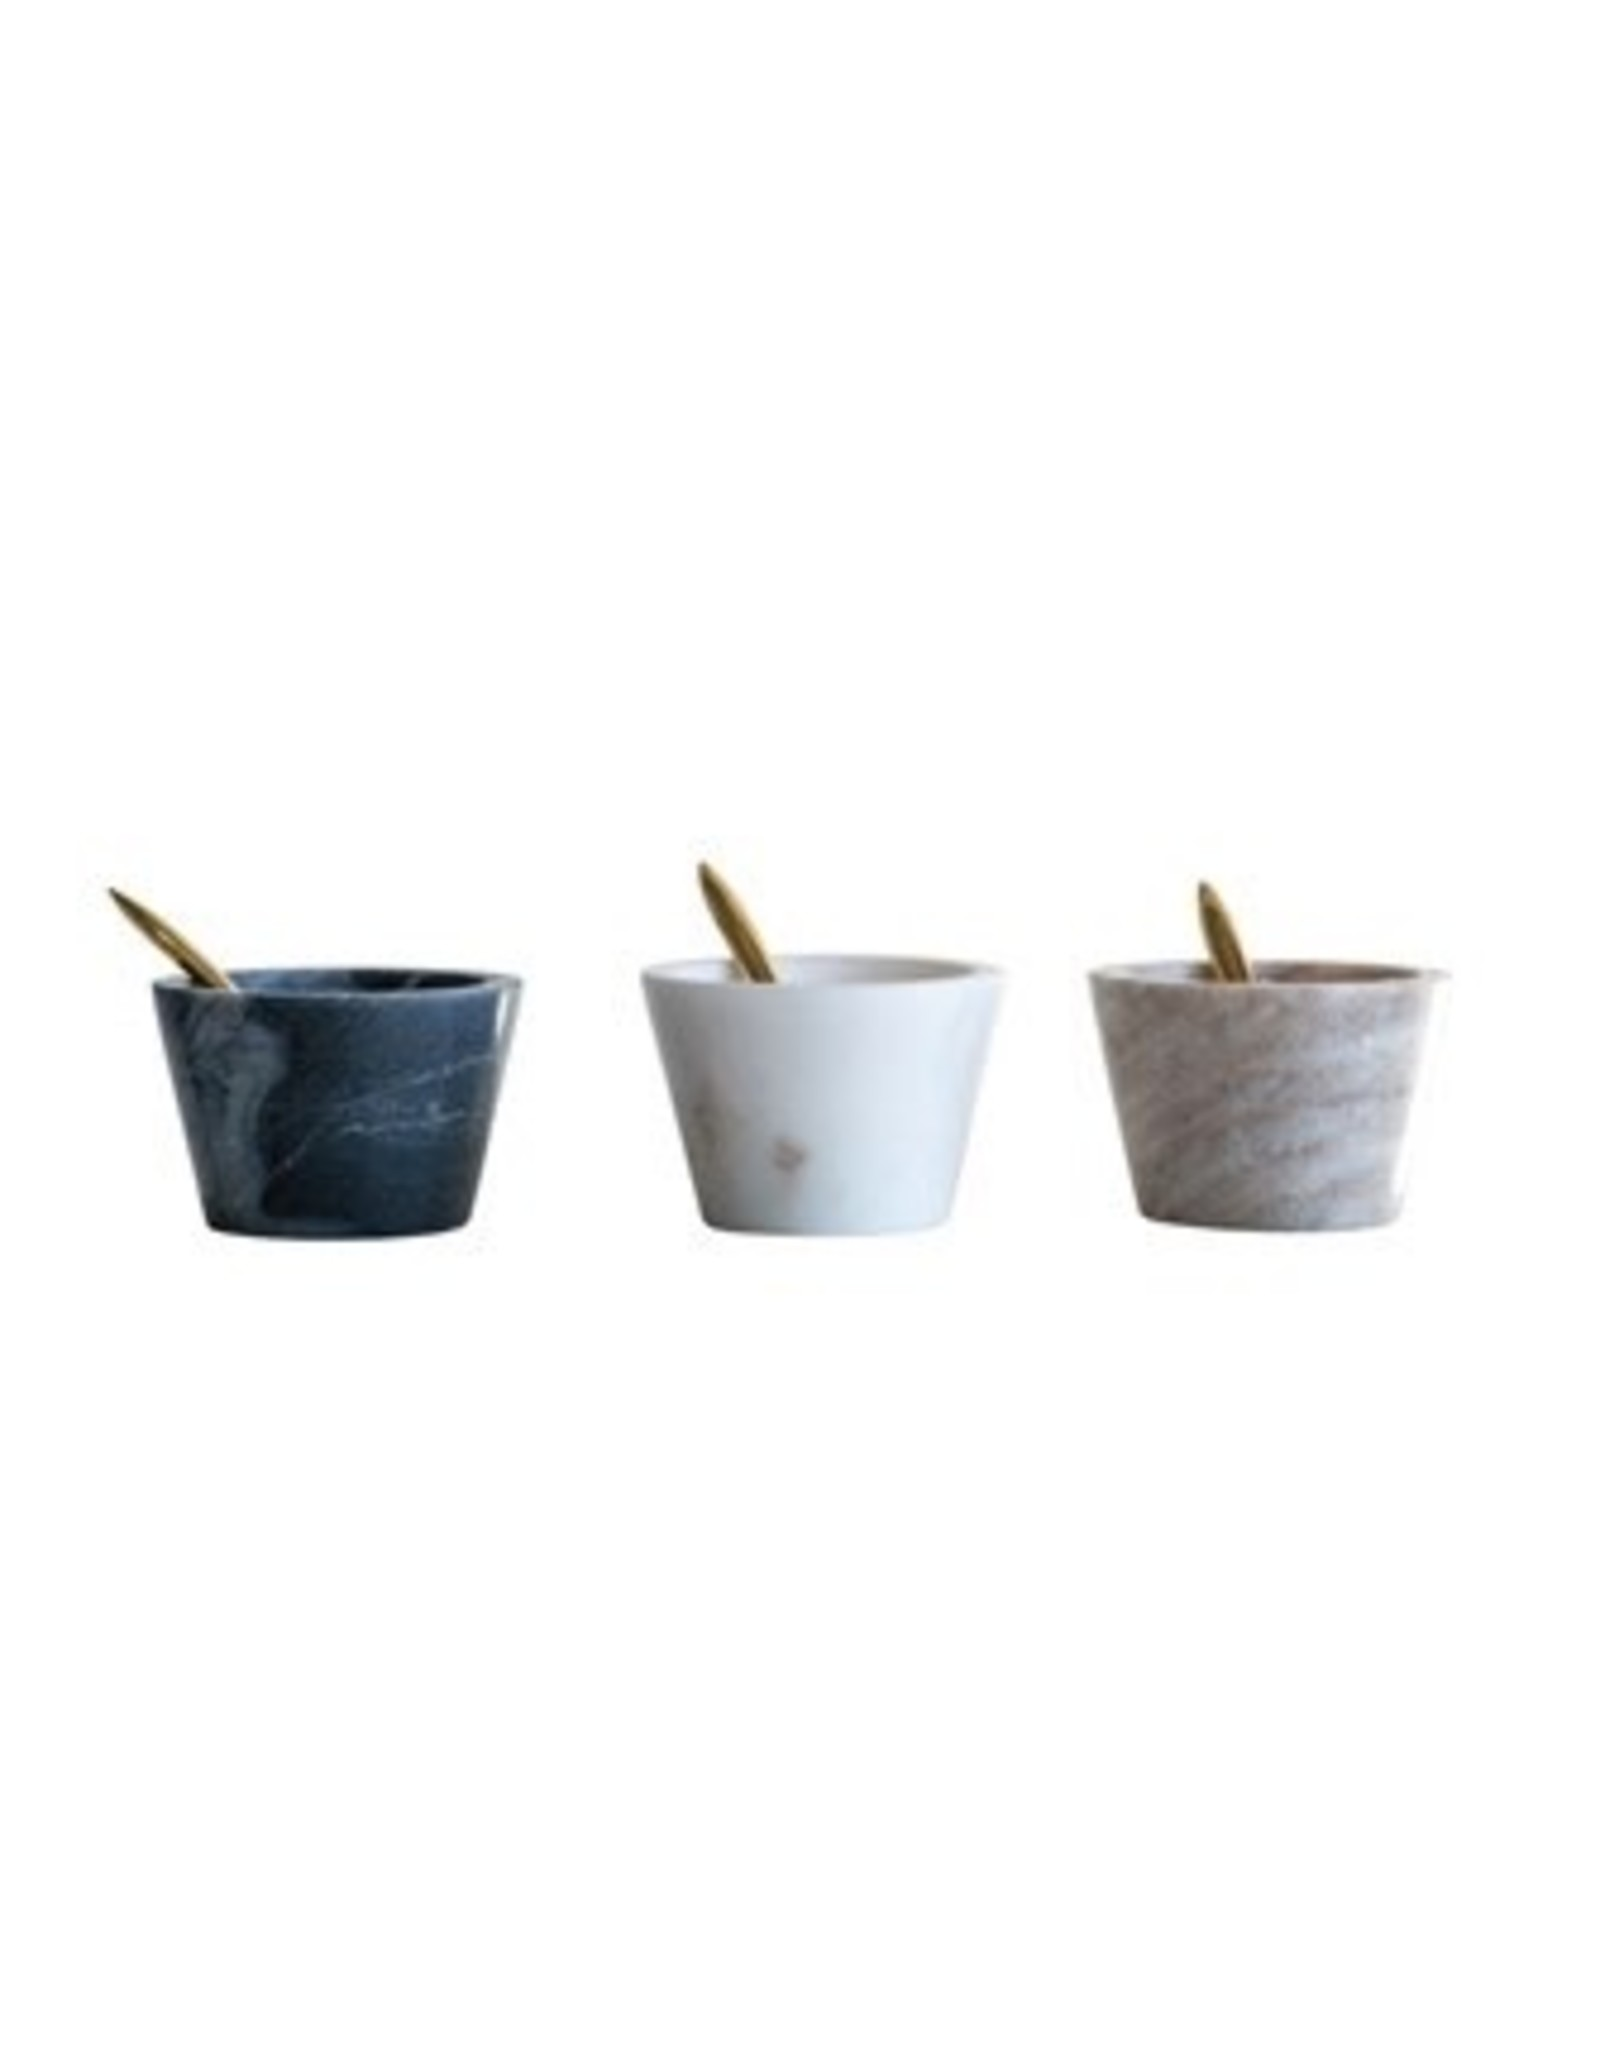 COP - Marble Bowl With Brass Spoon Set/ Black, White or Taupe